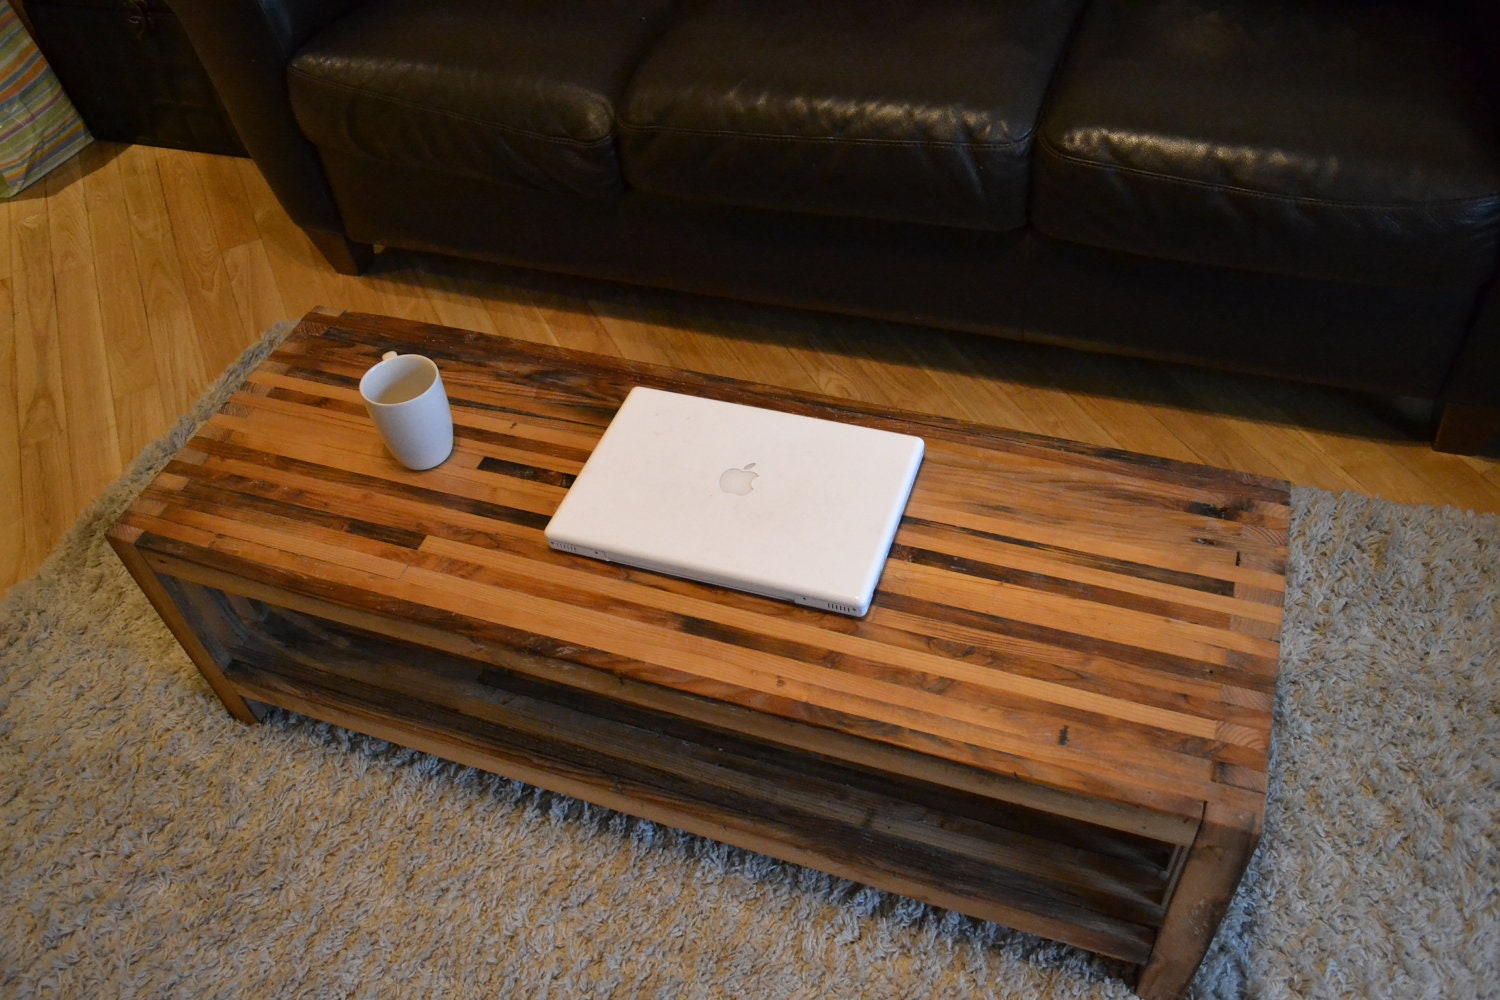 Hastings Reclaimed Wood Coffee Table Reclaimed Wood Coffee Table For Pinterest Rustic Mission Reclaimed